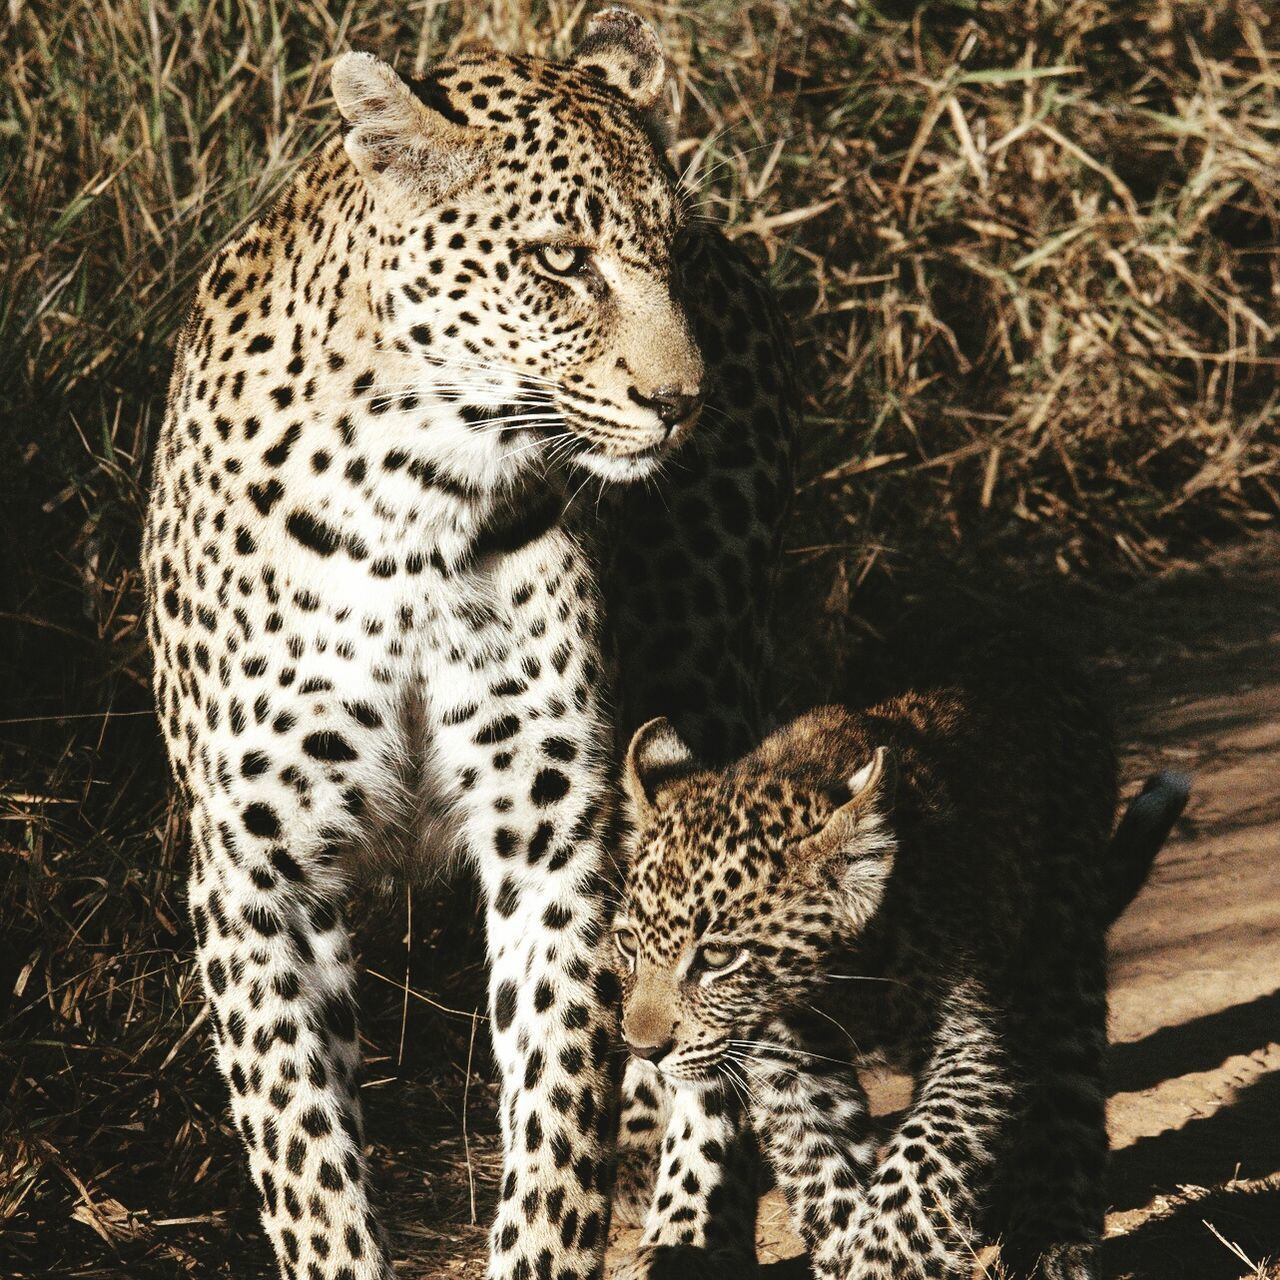 Leopard and her cub in South Africa Leopard Cat Cats Nature Animals South Africa Wild Safari Kingscamp Cub